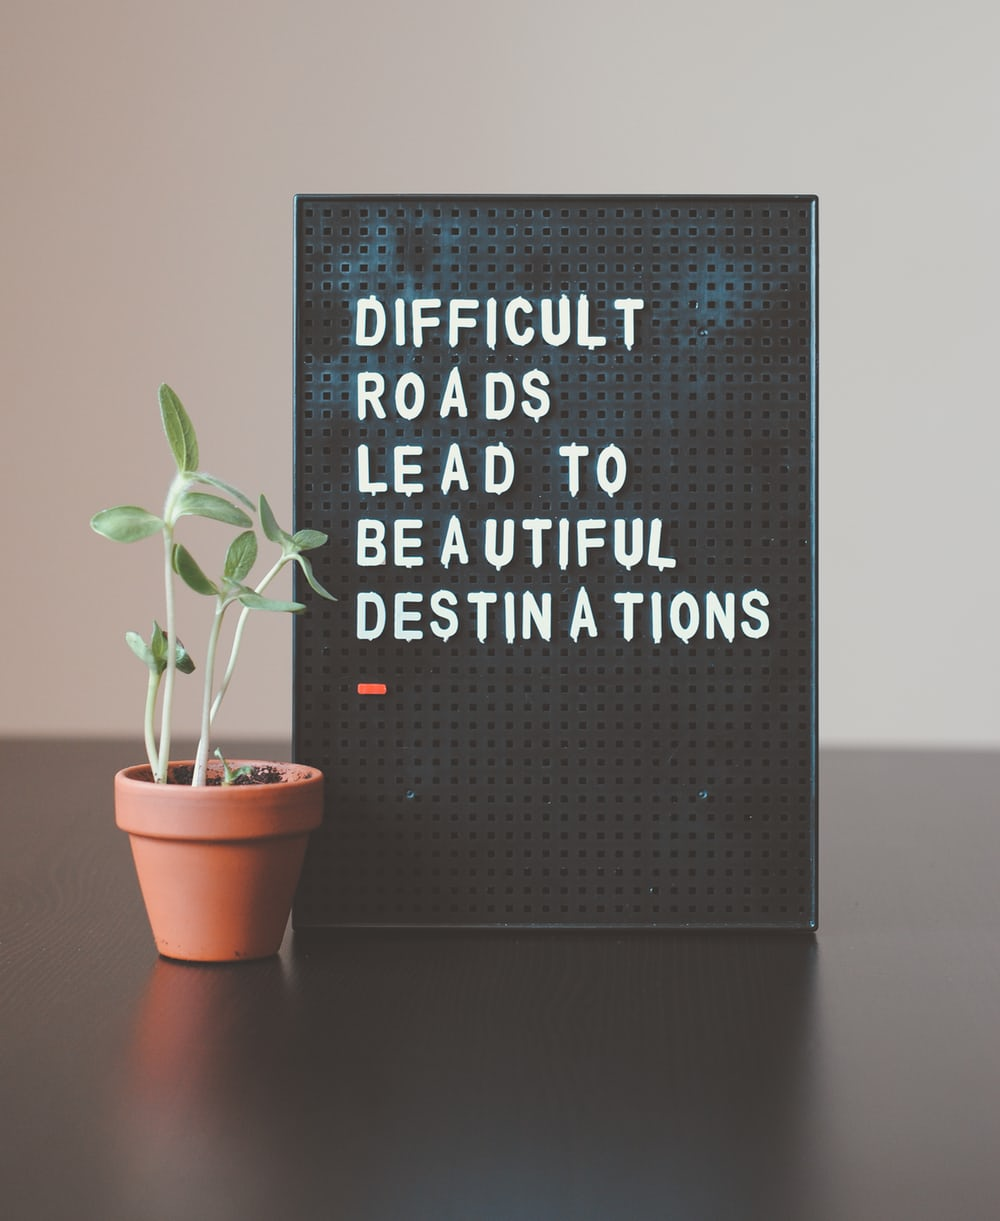 [Image] Don't let difficulties discourage you, as those journeys with difficulties are typically the ones with the best endings